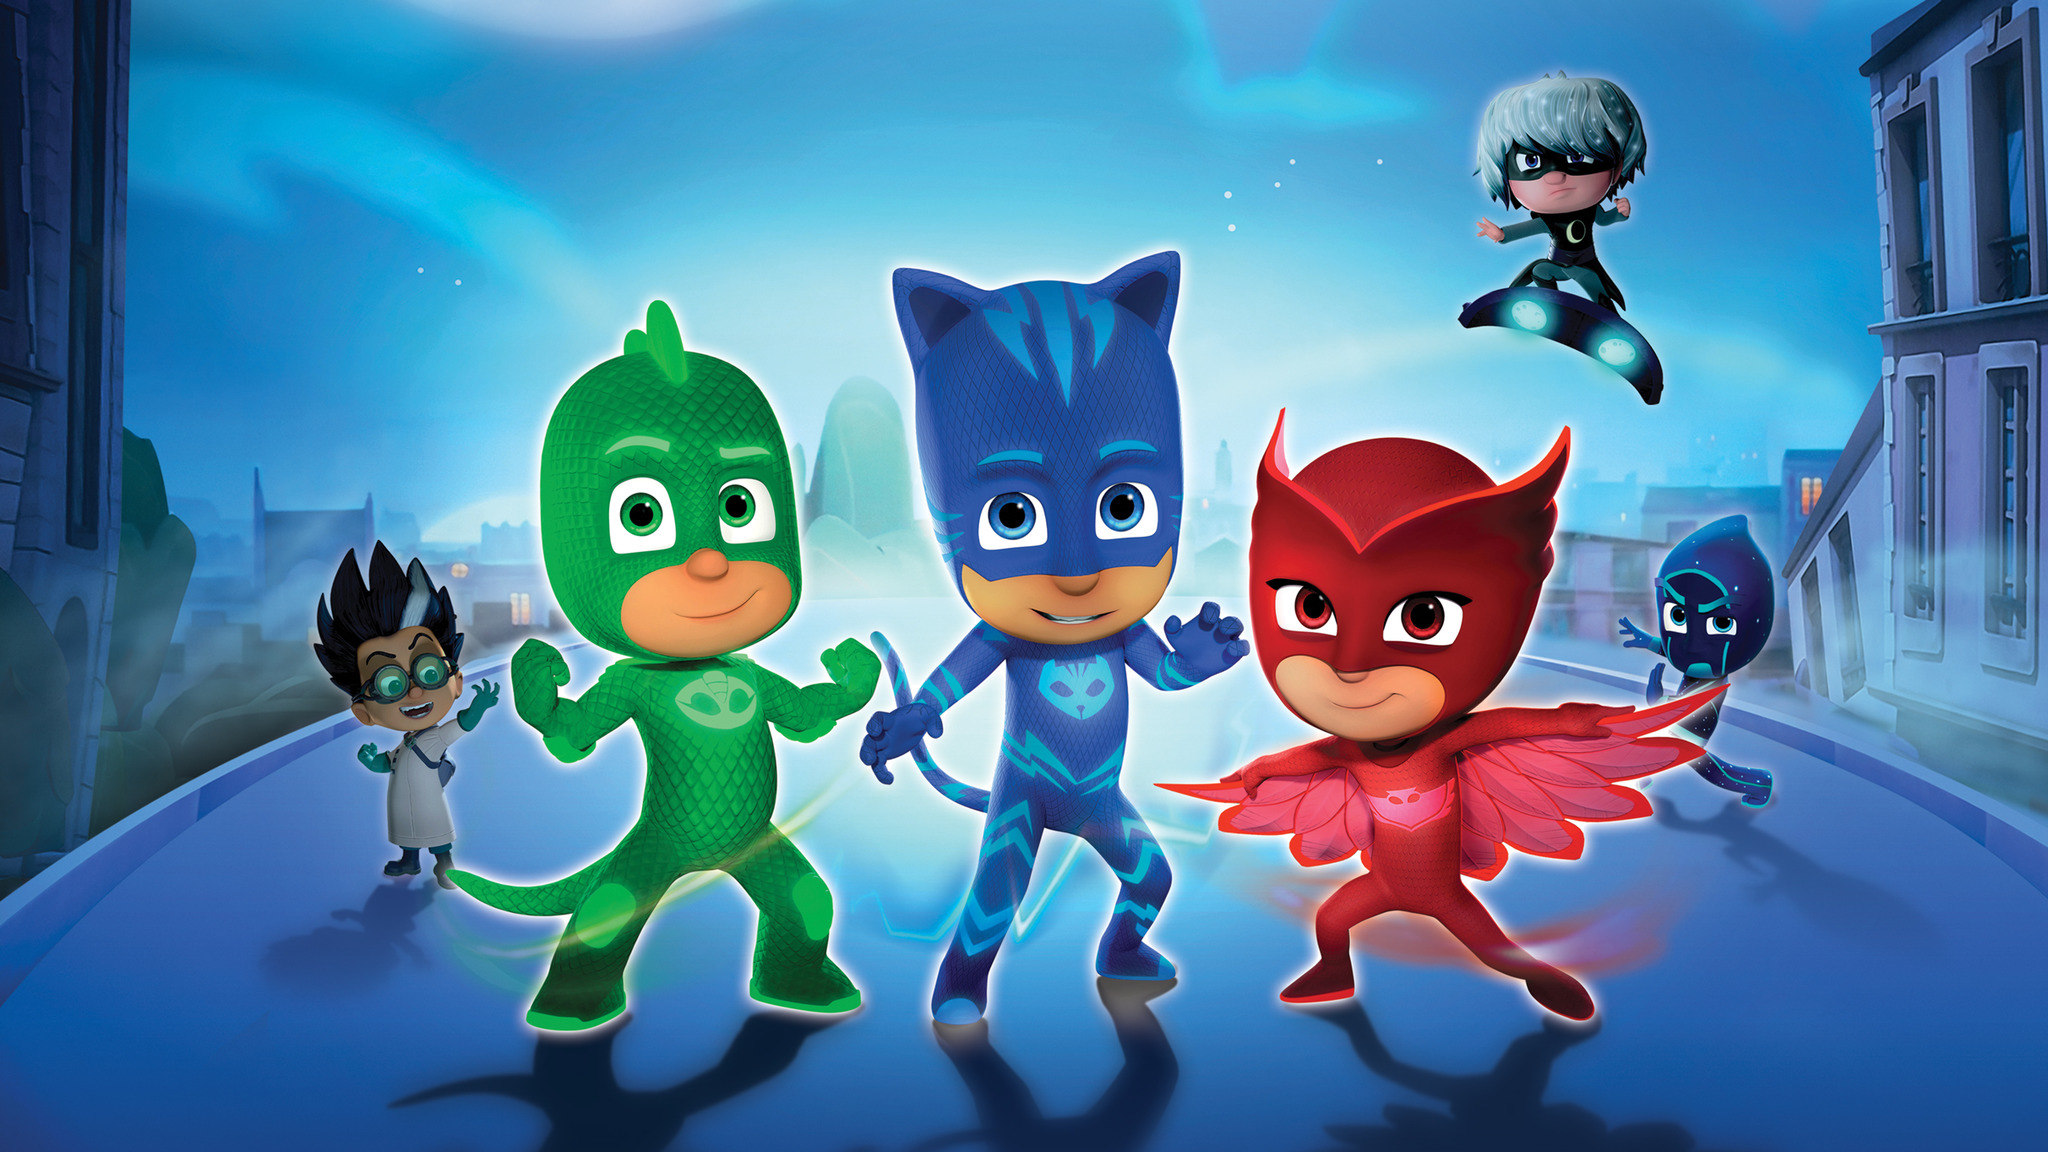 Christian Wallpaper Fall Happy Birthday Pj Masks Live Time To Be A Hero Presented By Ryman